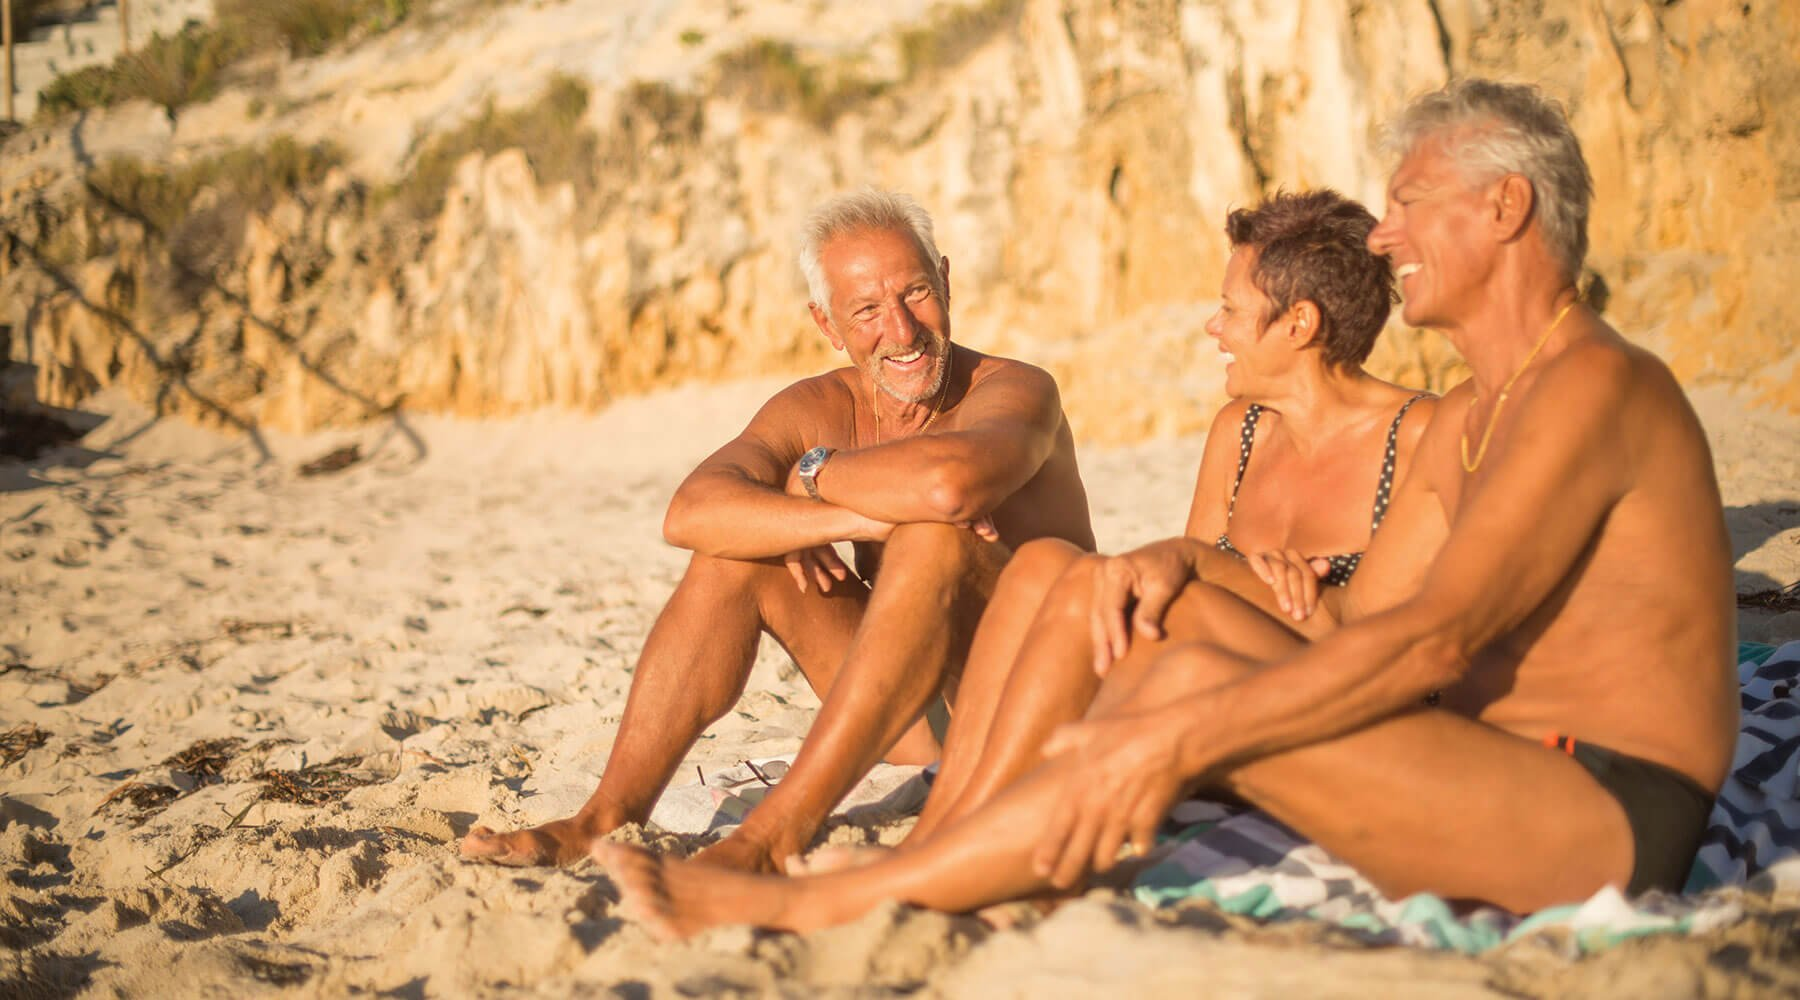 Group of 60-year-old's having a laugh on the sand at beach